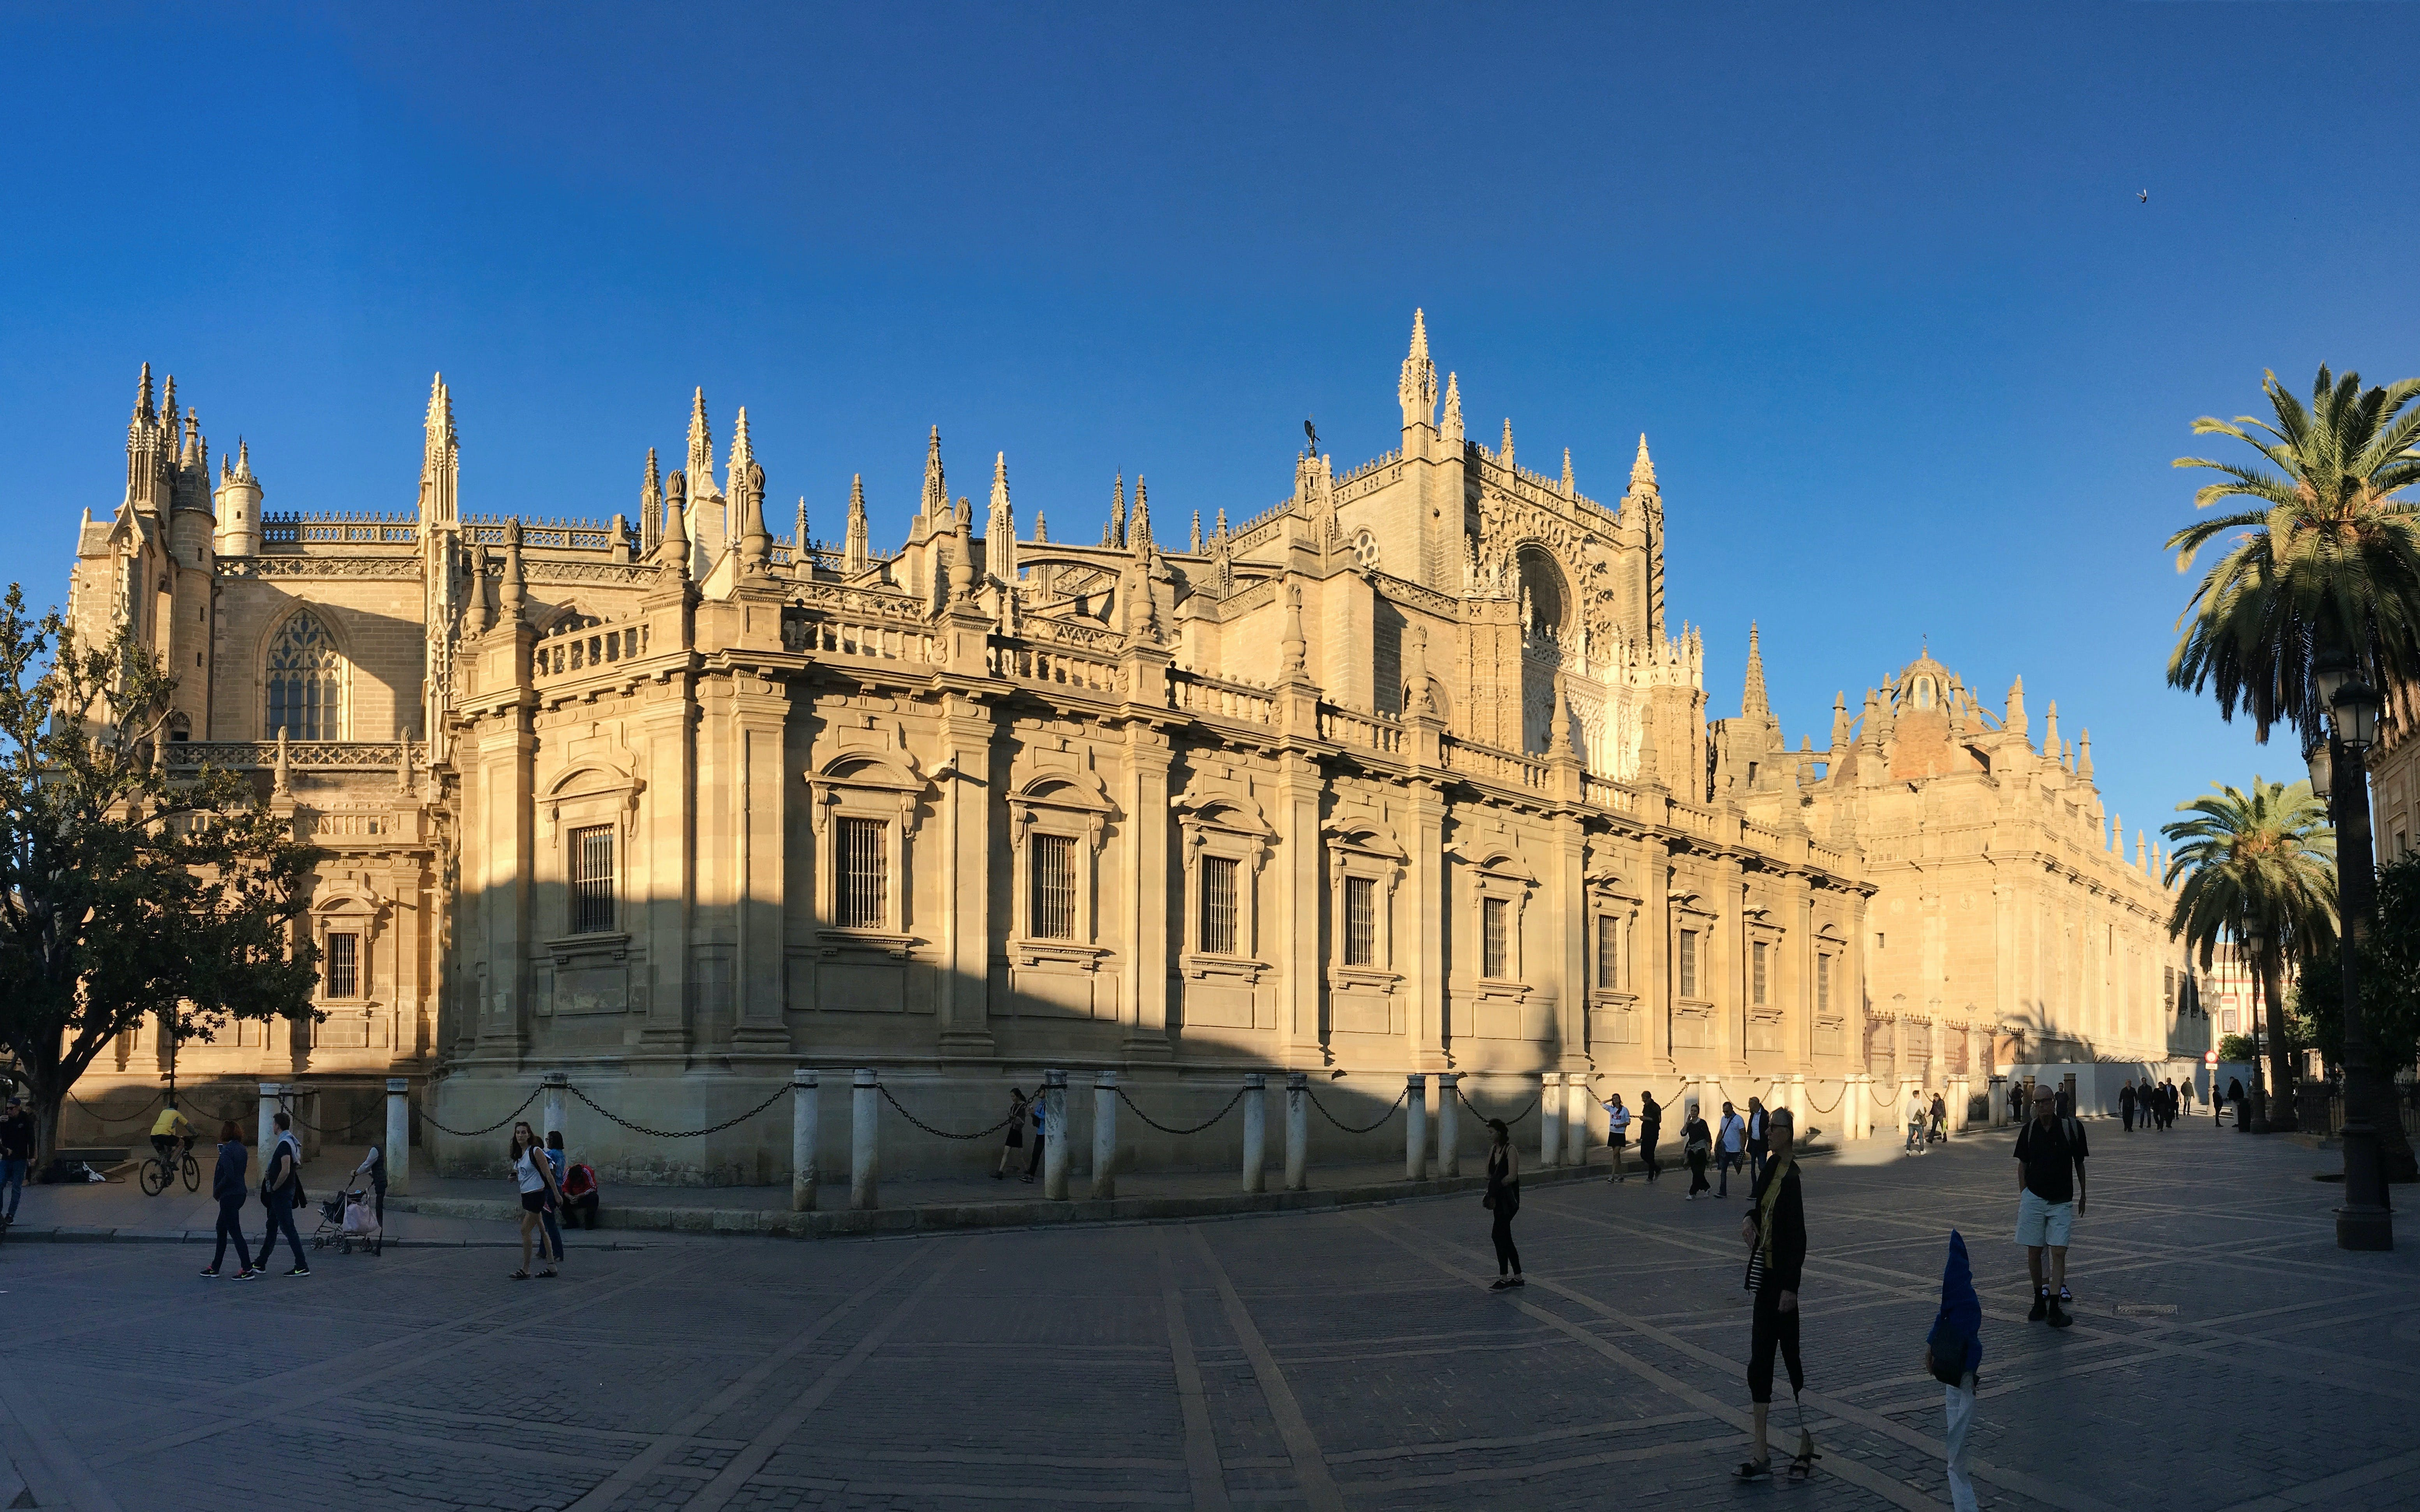 Tickets to Cathedral of Seville